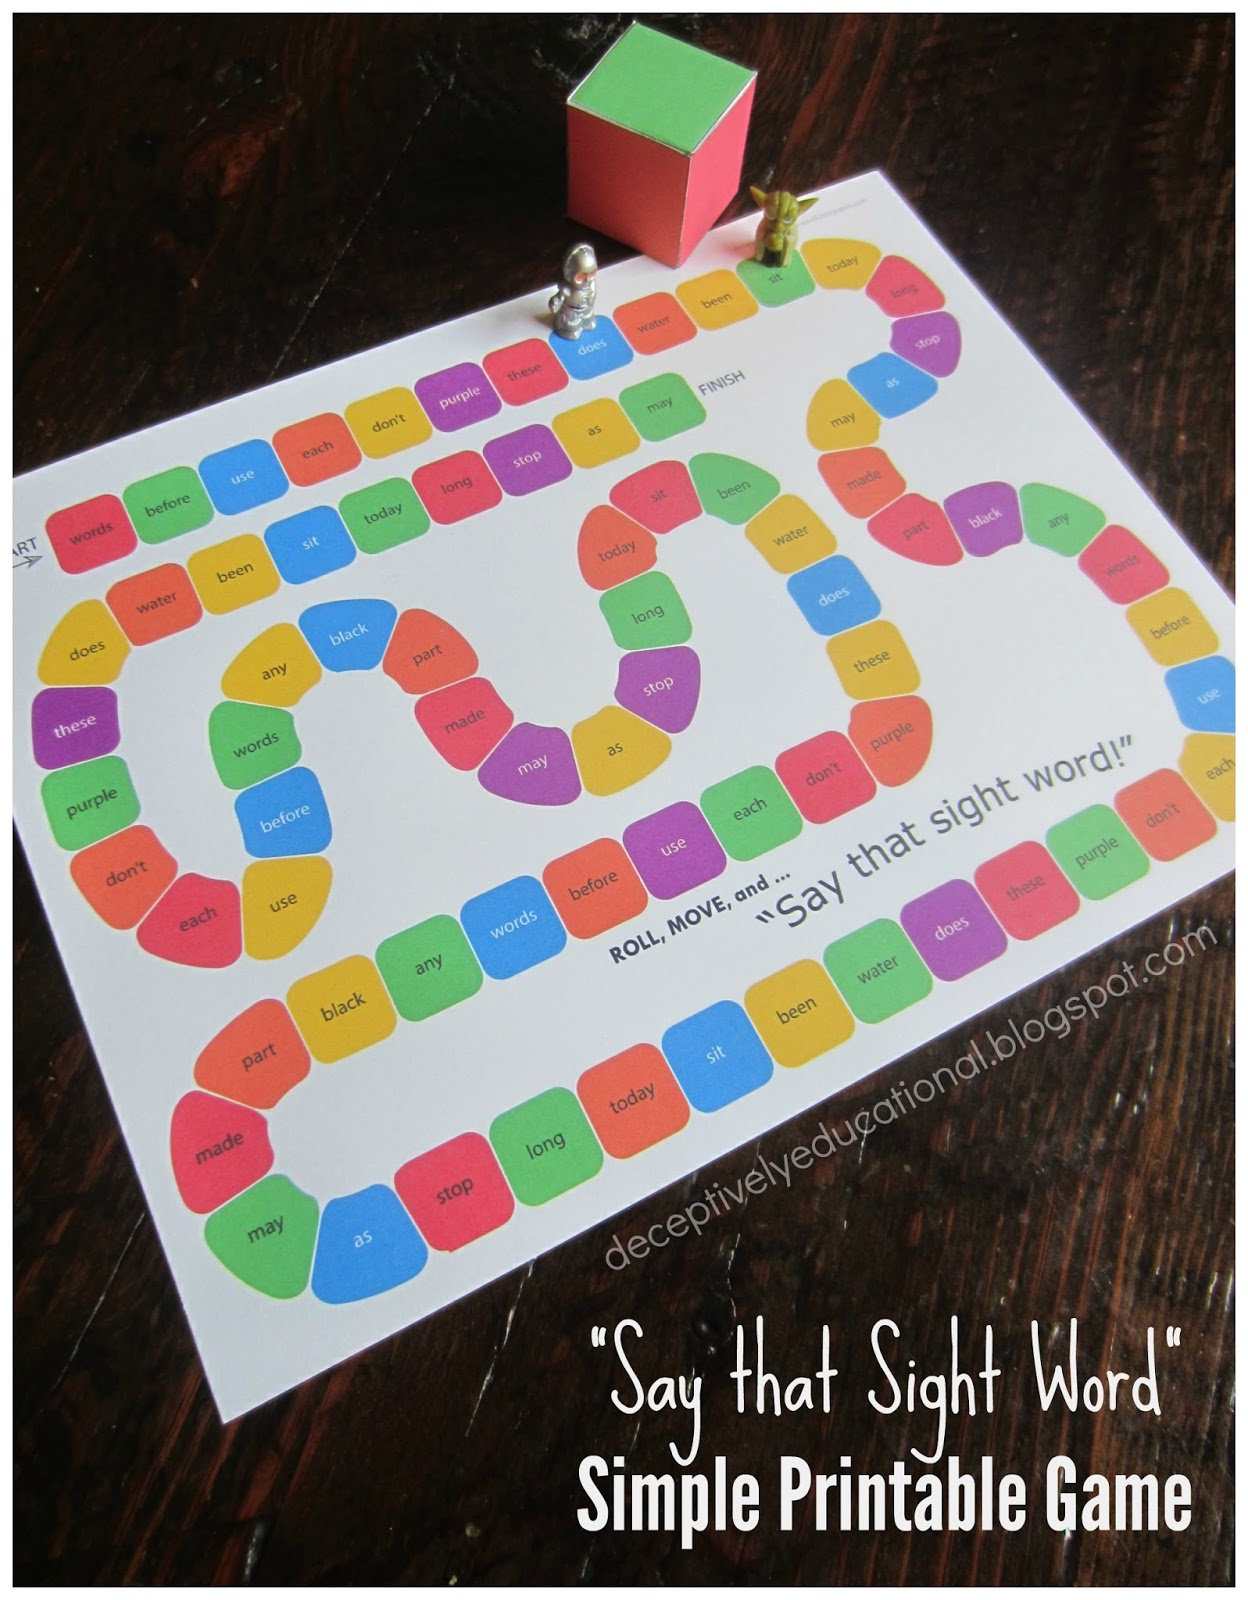 Relentlessly Fun Deceptively Educational Super Simple Free Printable Sight Word Game